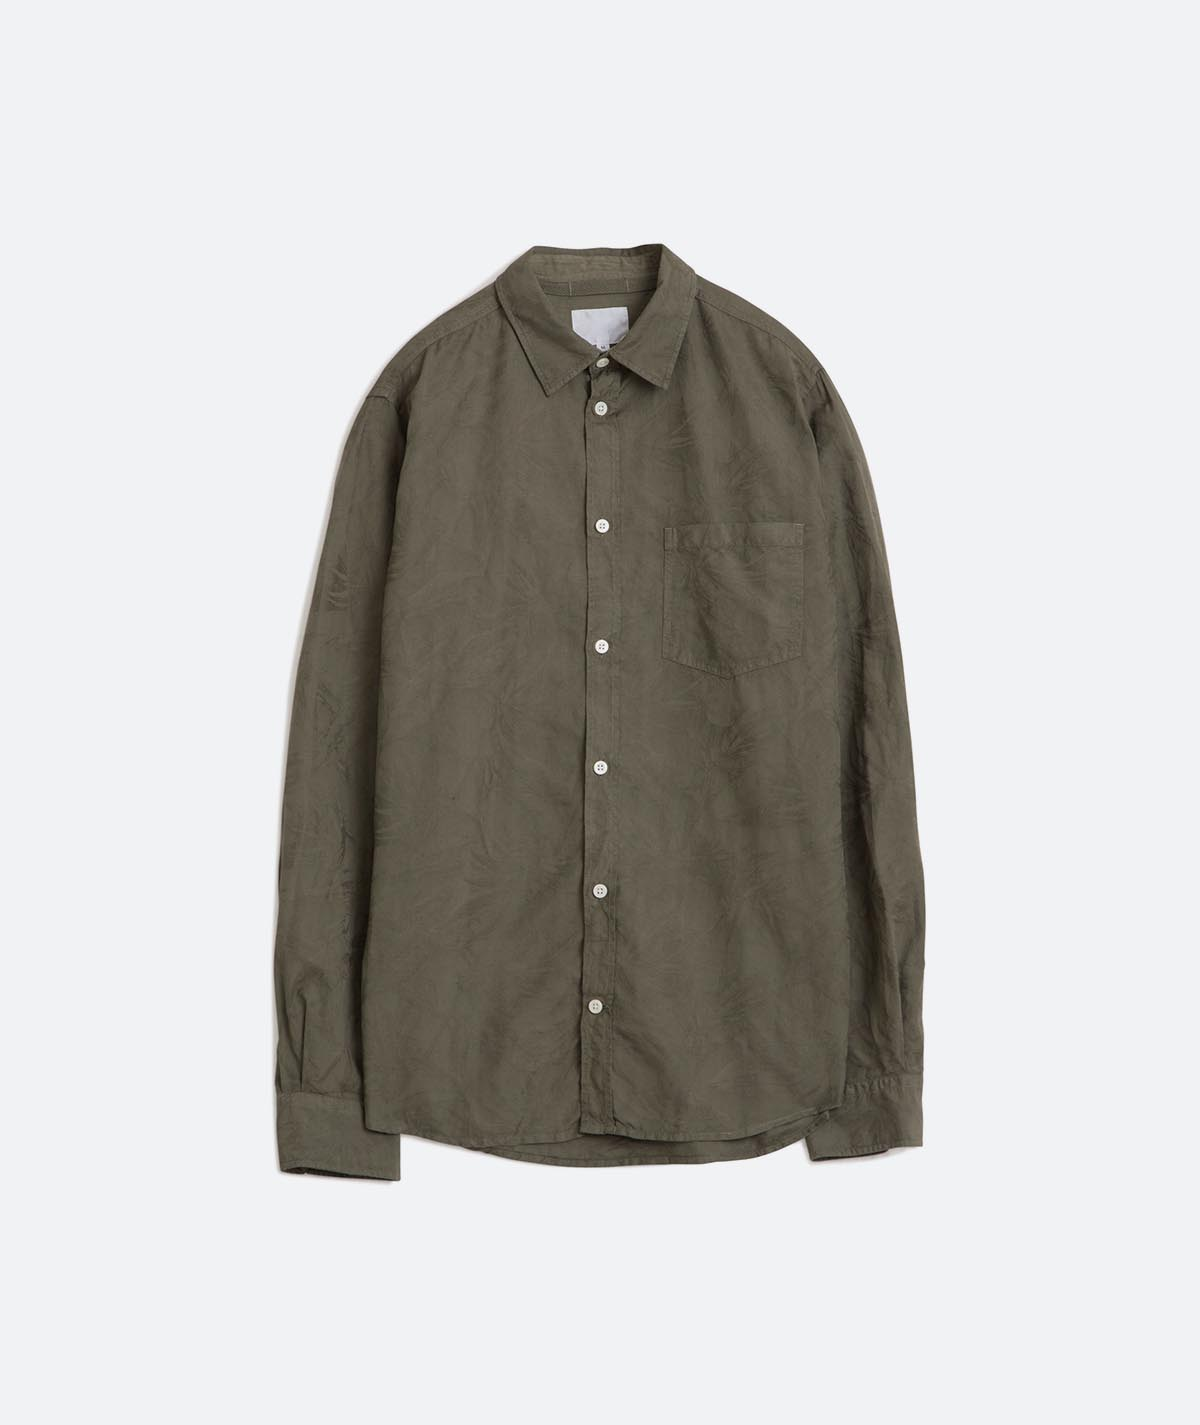 Second-hand Clothing - Man